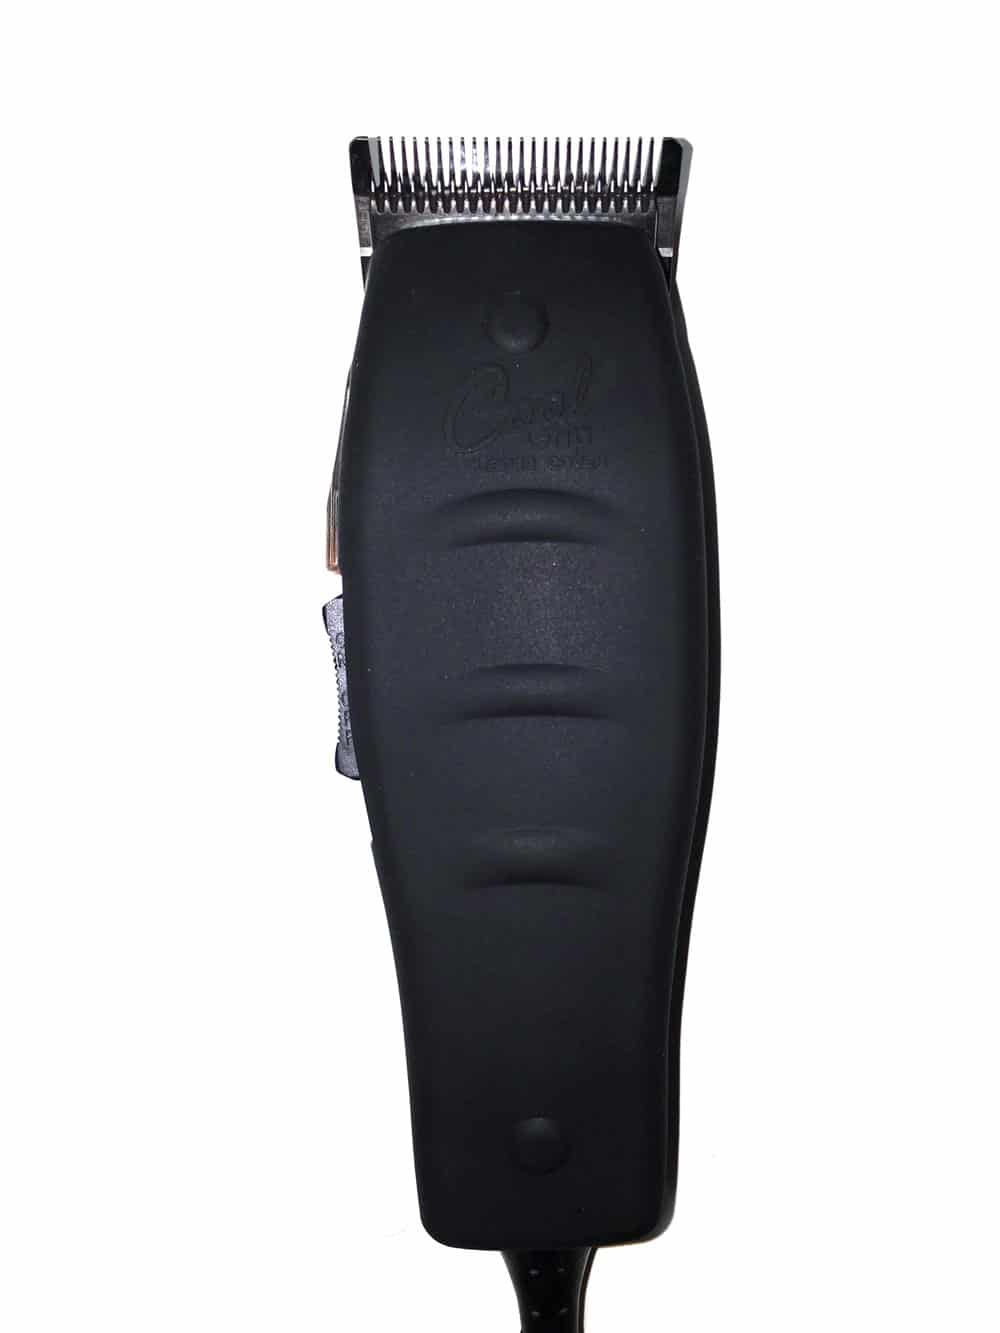 Cool Grip Clipper Cover Andis Master Barber Depot